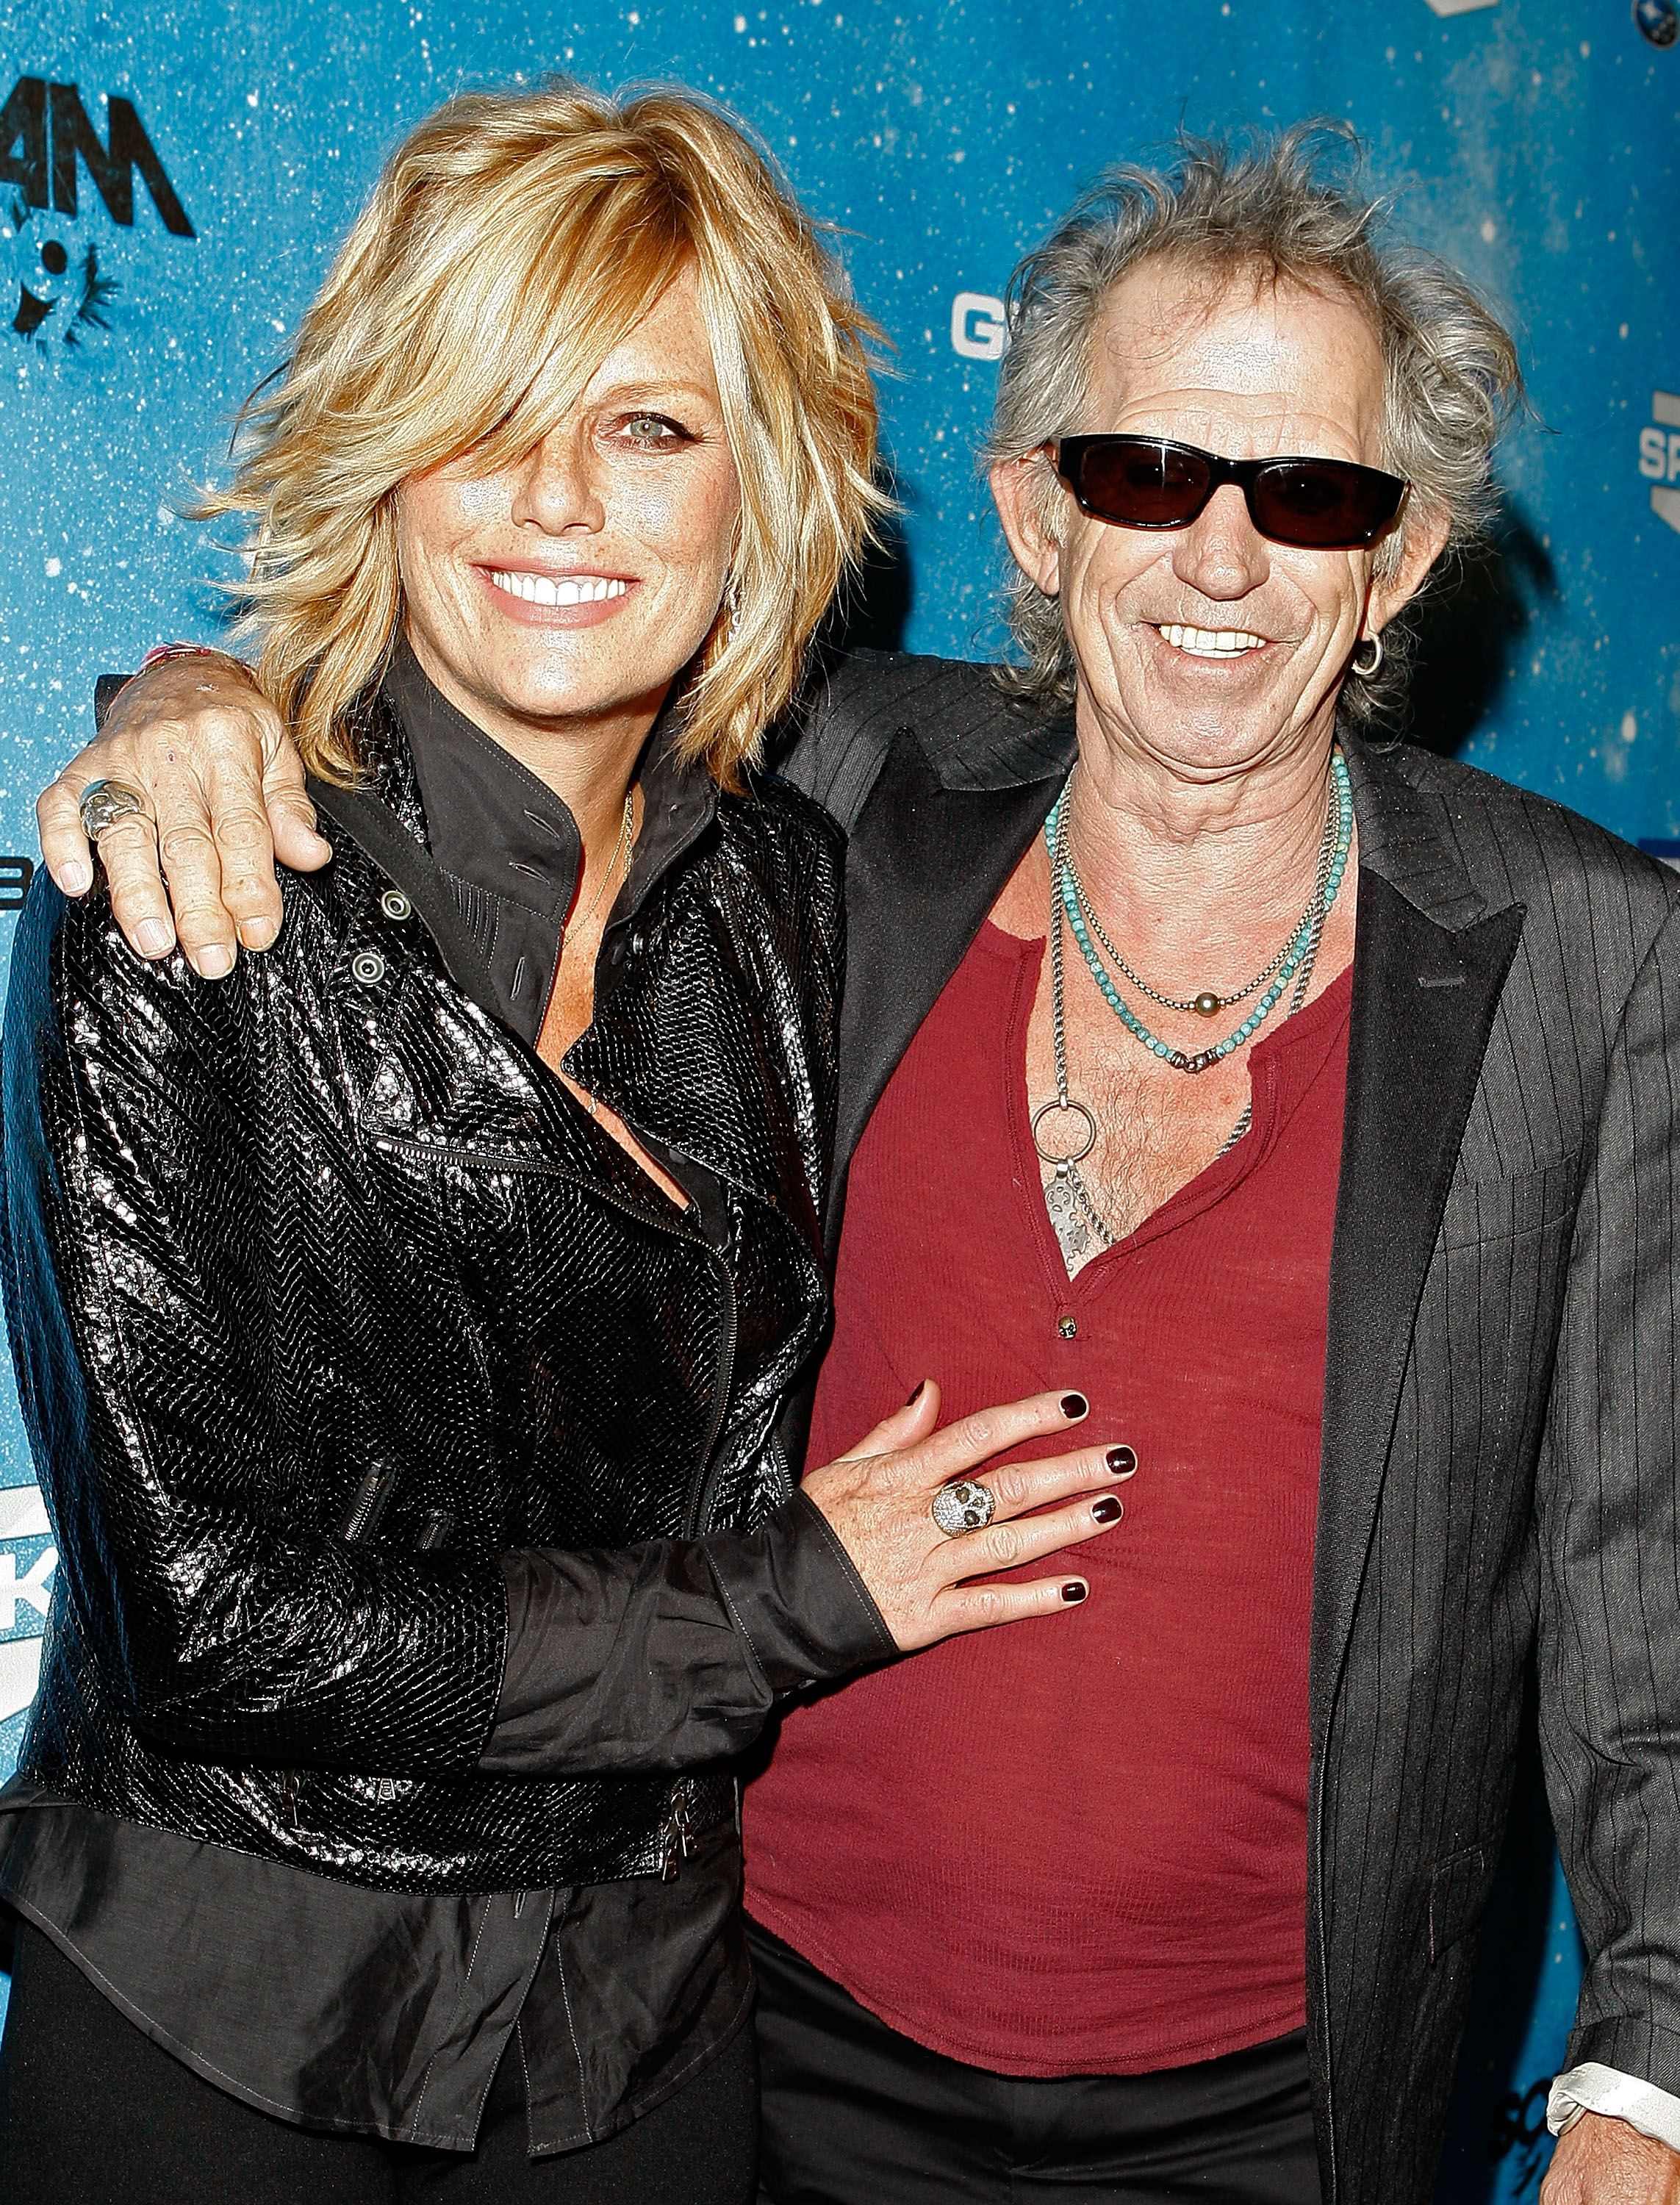 LOS ANGELES, CA - OCTOBER 17:  Patti Hansen (L) and musician Keith Richards arrive at Spike TV's Scream 2009 held at the Greek Theatre on October 17, 2009 in Los Angeles, California.  (Photo by Chris Polk/Getty Images)